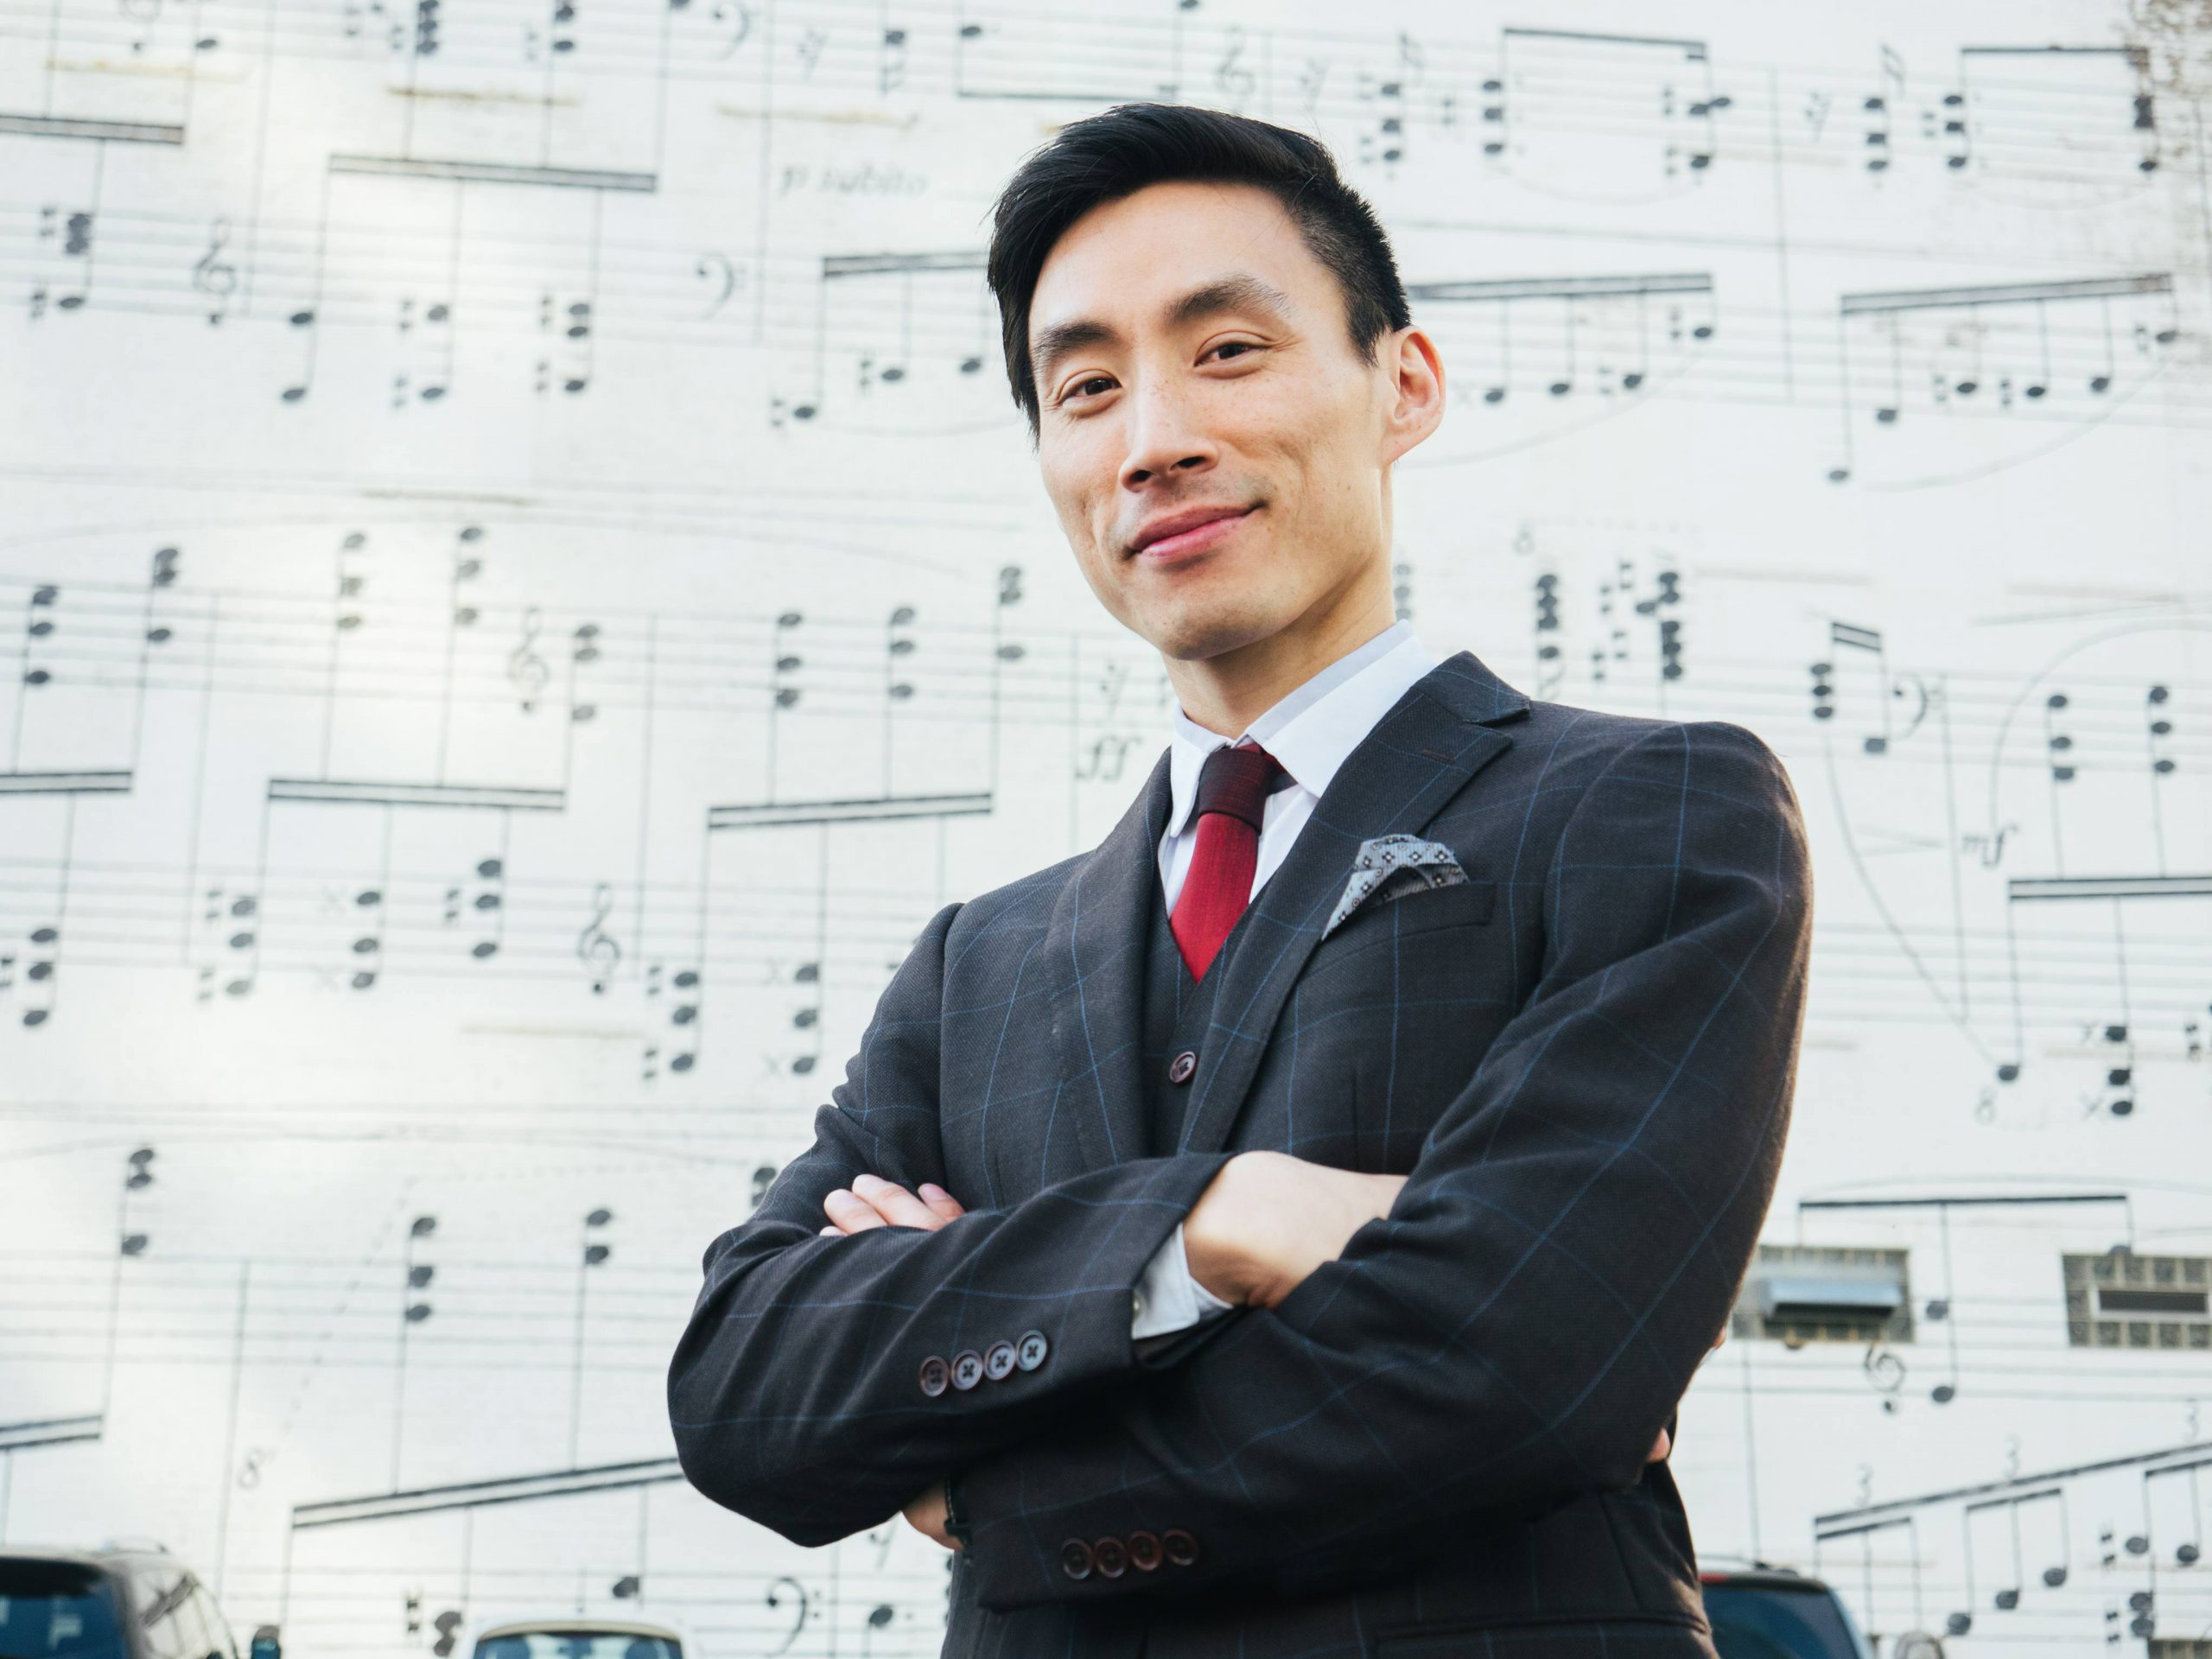 An Asian man wearing a suit standing with his arms crossed in front of a wall with sheet music.